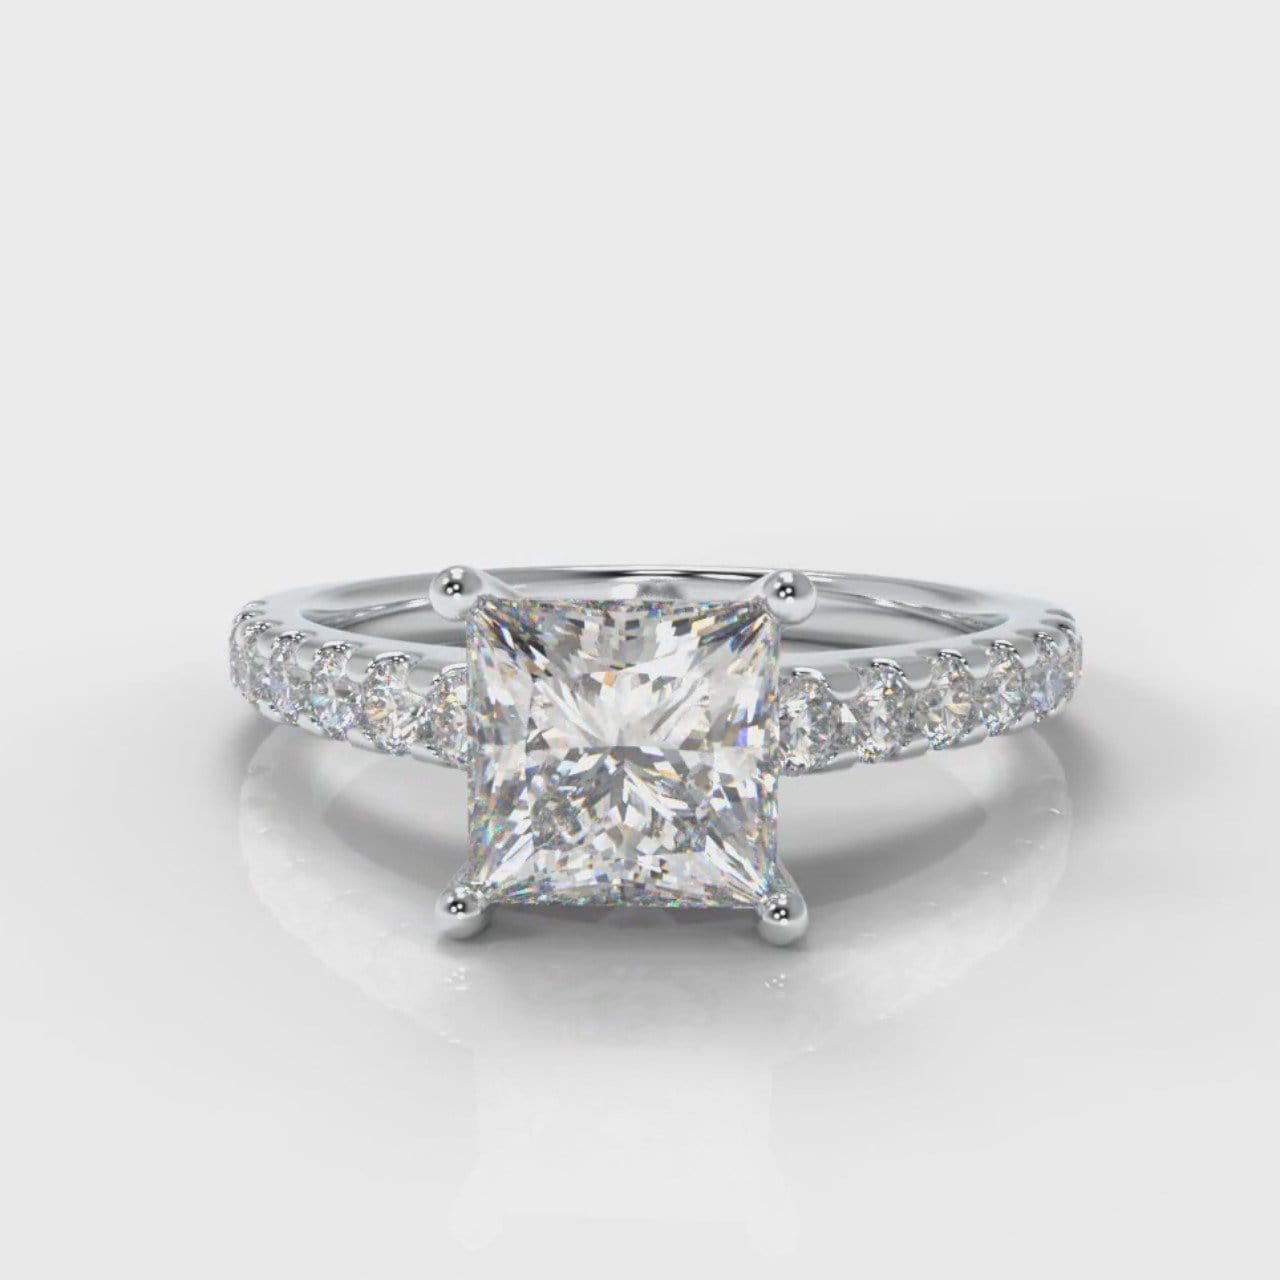 Carrée Micropavé Princess Cut Diamond Engagement Ring